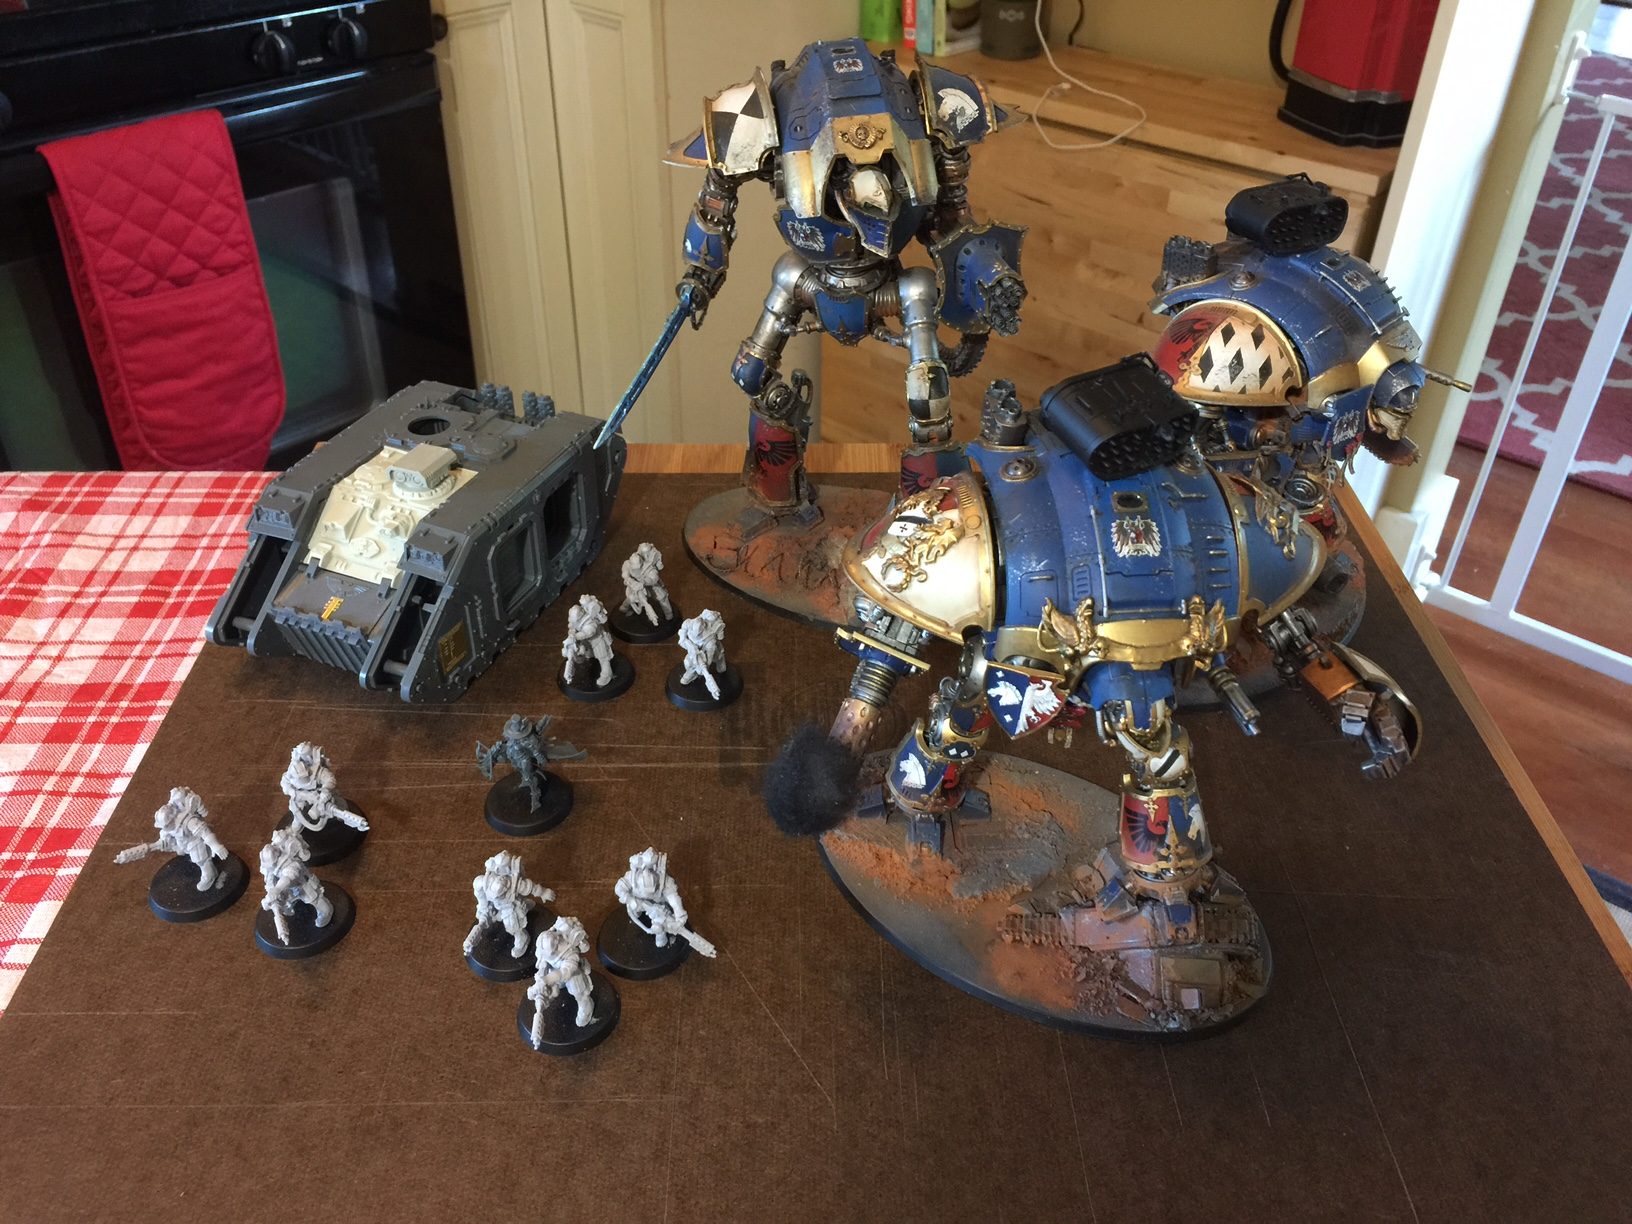 Warhammer 40k 8th Edition: First Impressions — The Dice Abide